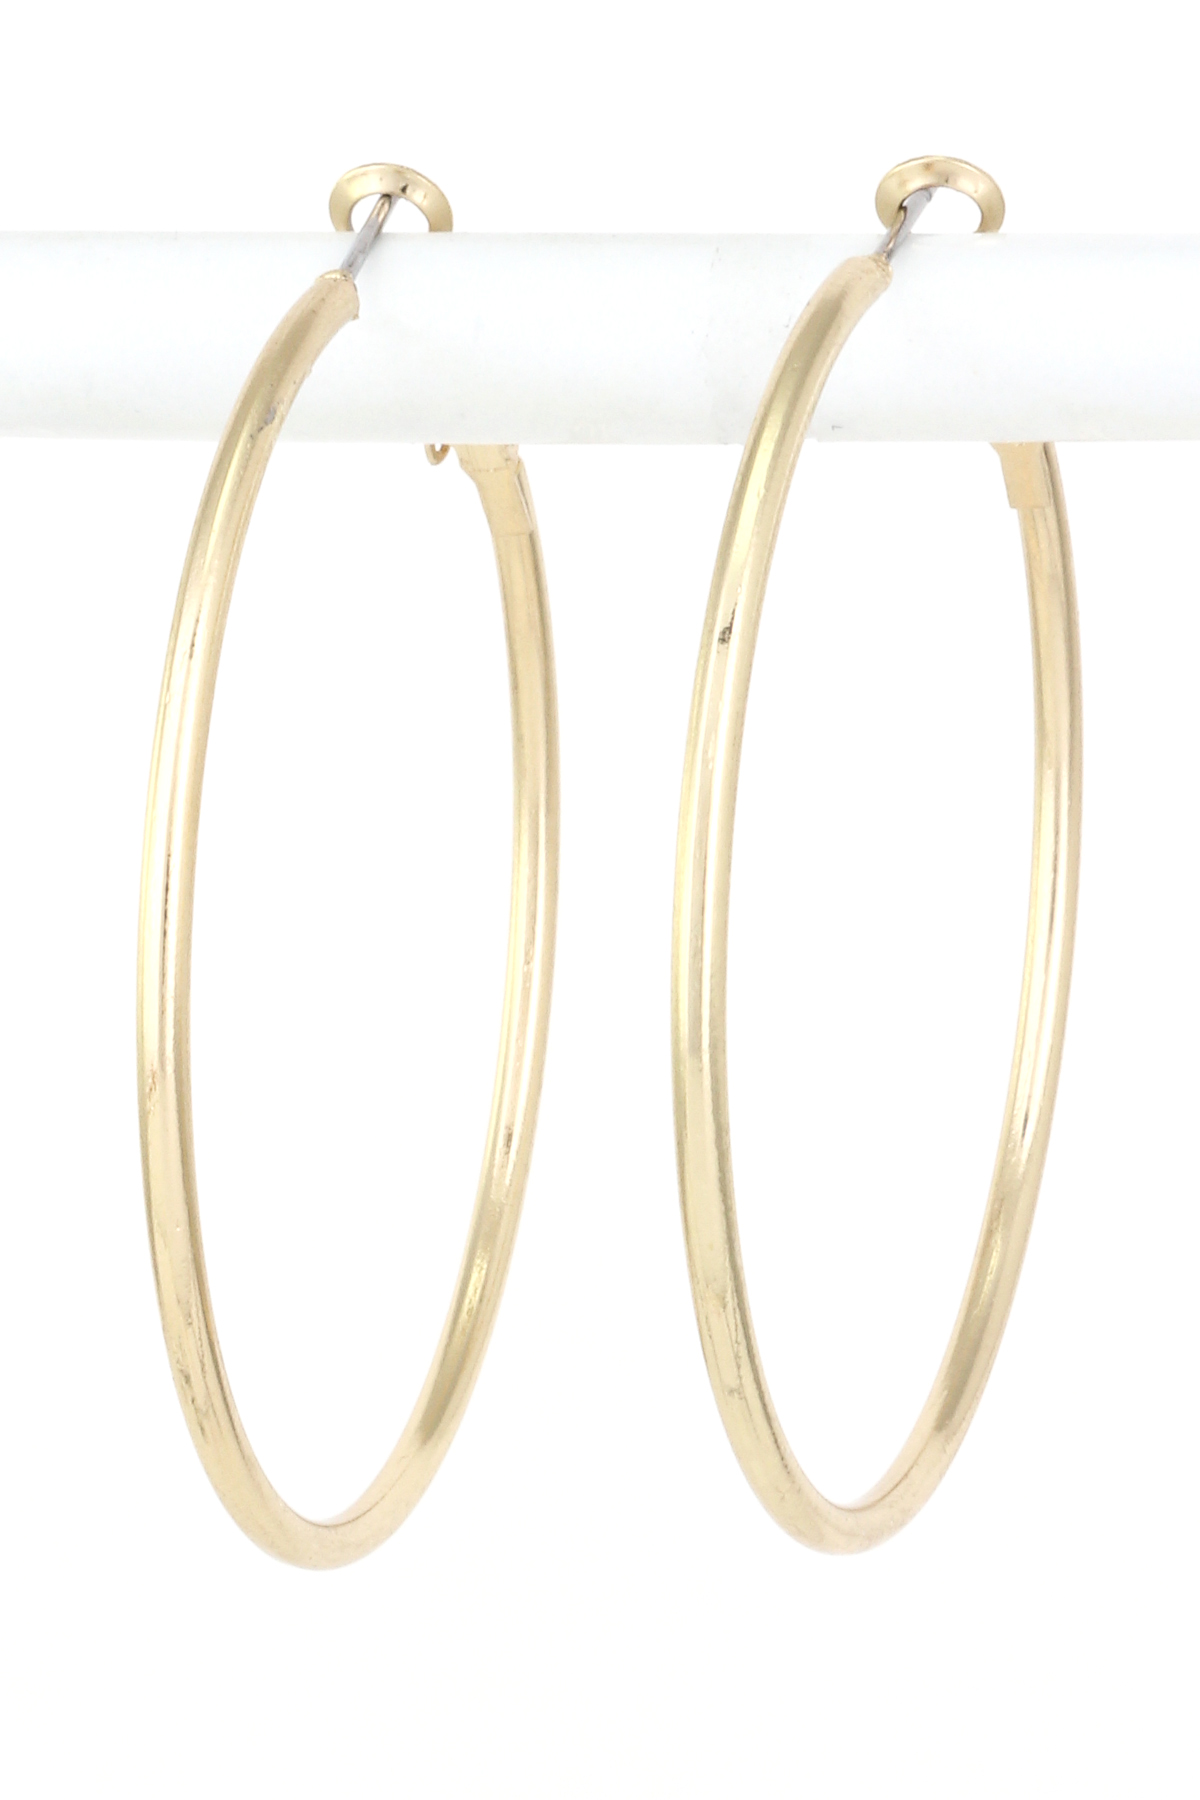 Buy Earrings at Macy's and get FREE SHIPPING with $99 purchase! Shop Fine Jewelry for diamond earrings, pearl earrings, gold earrings & more.